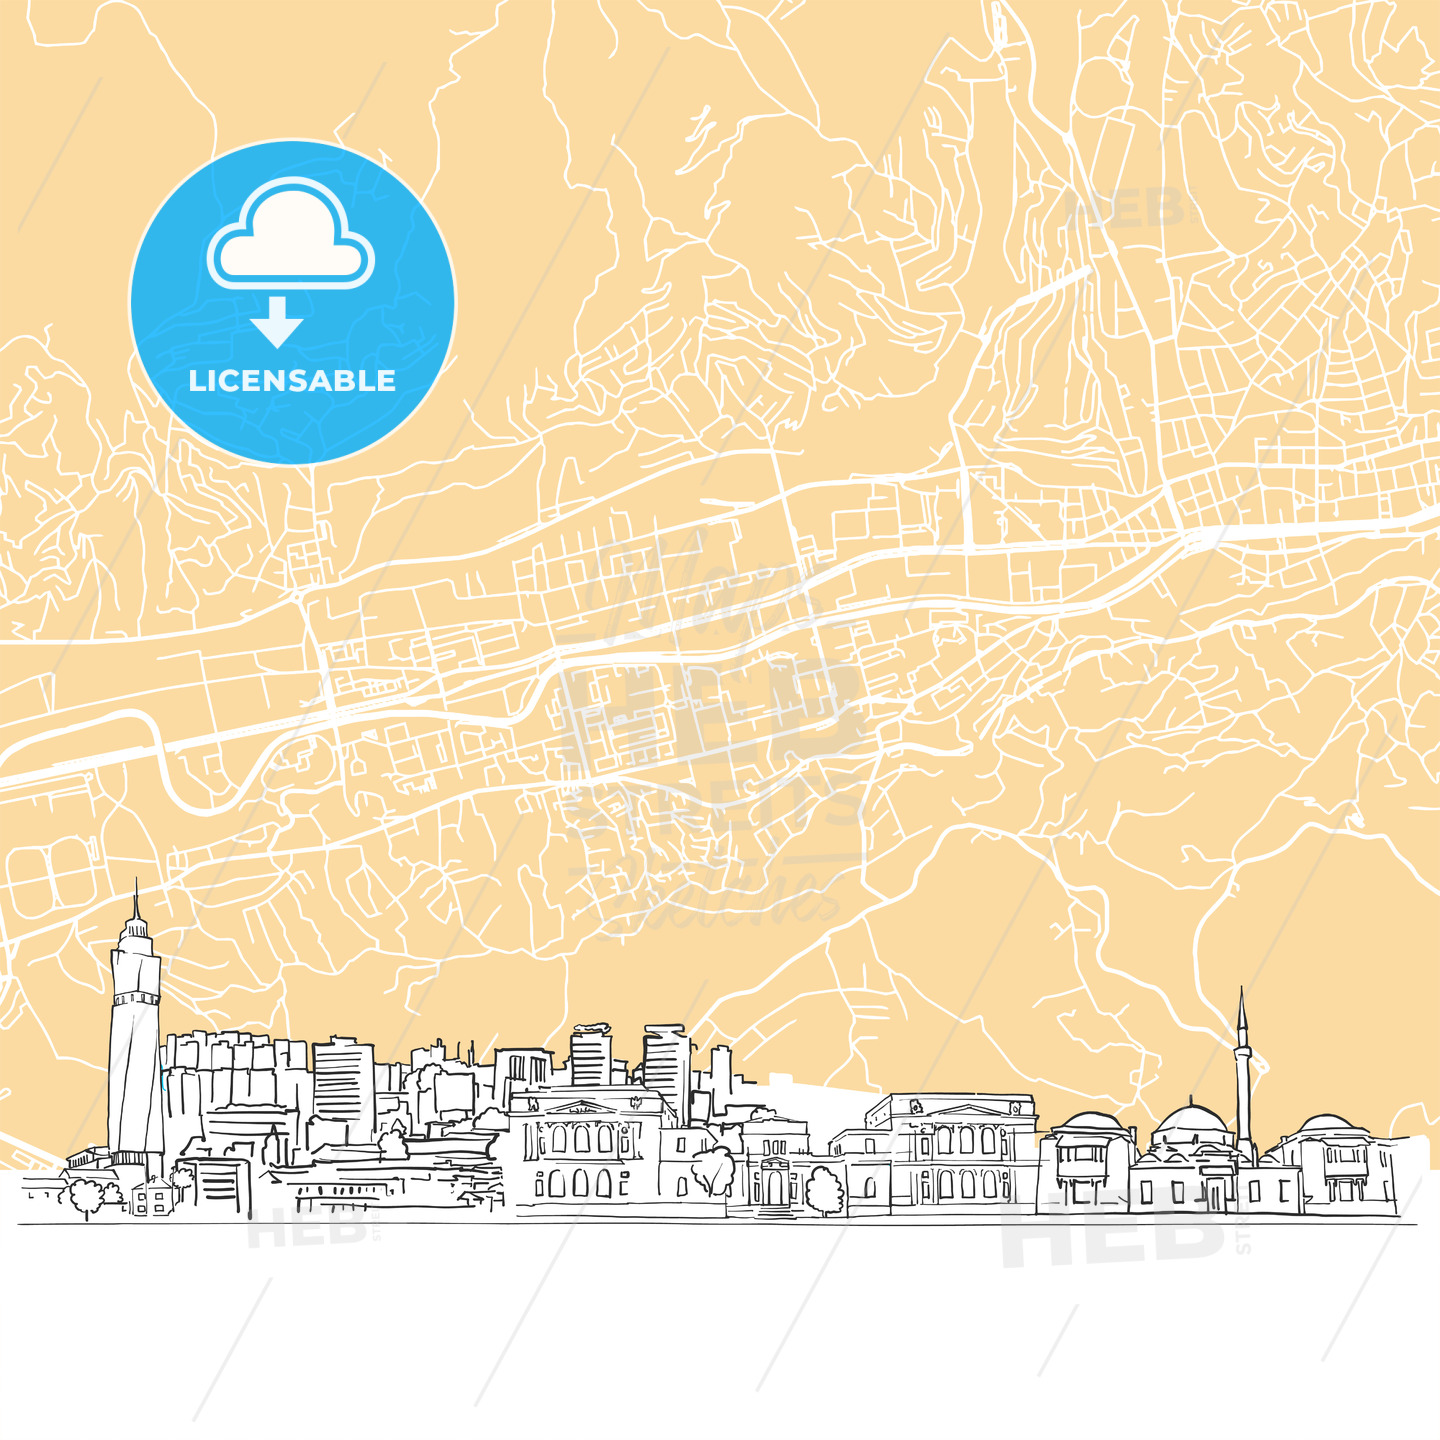 Sarajevo Bosnia and Herzegovina Skyline Map - HEBSTREIT's Sketches